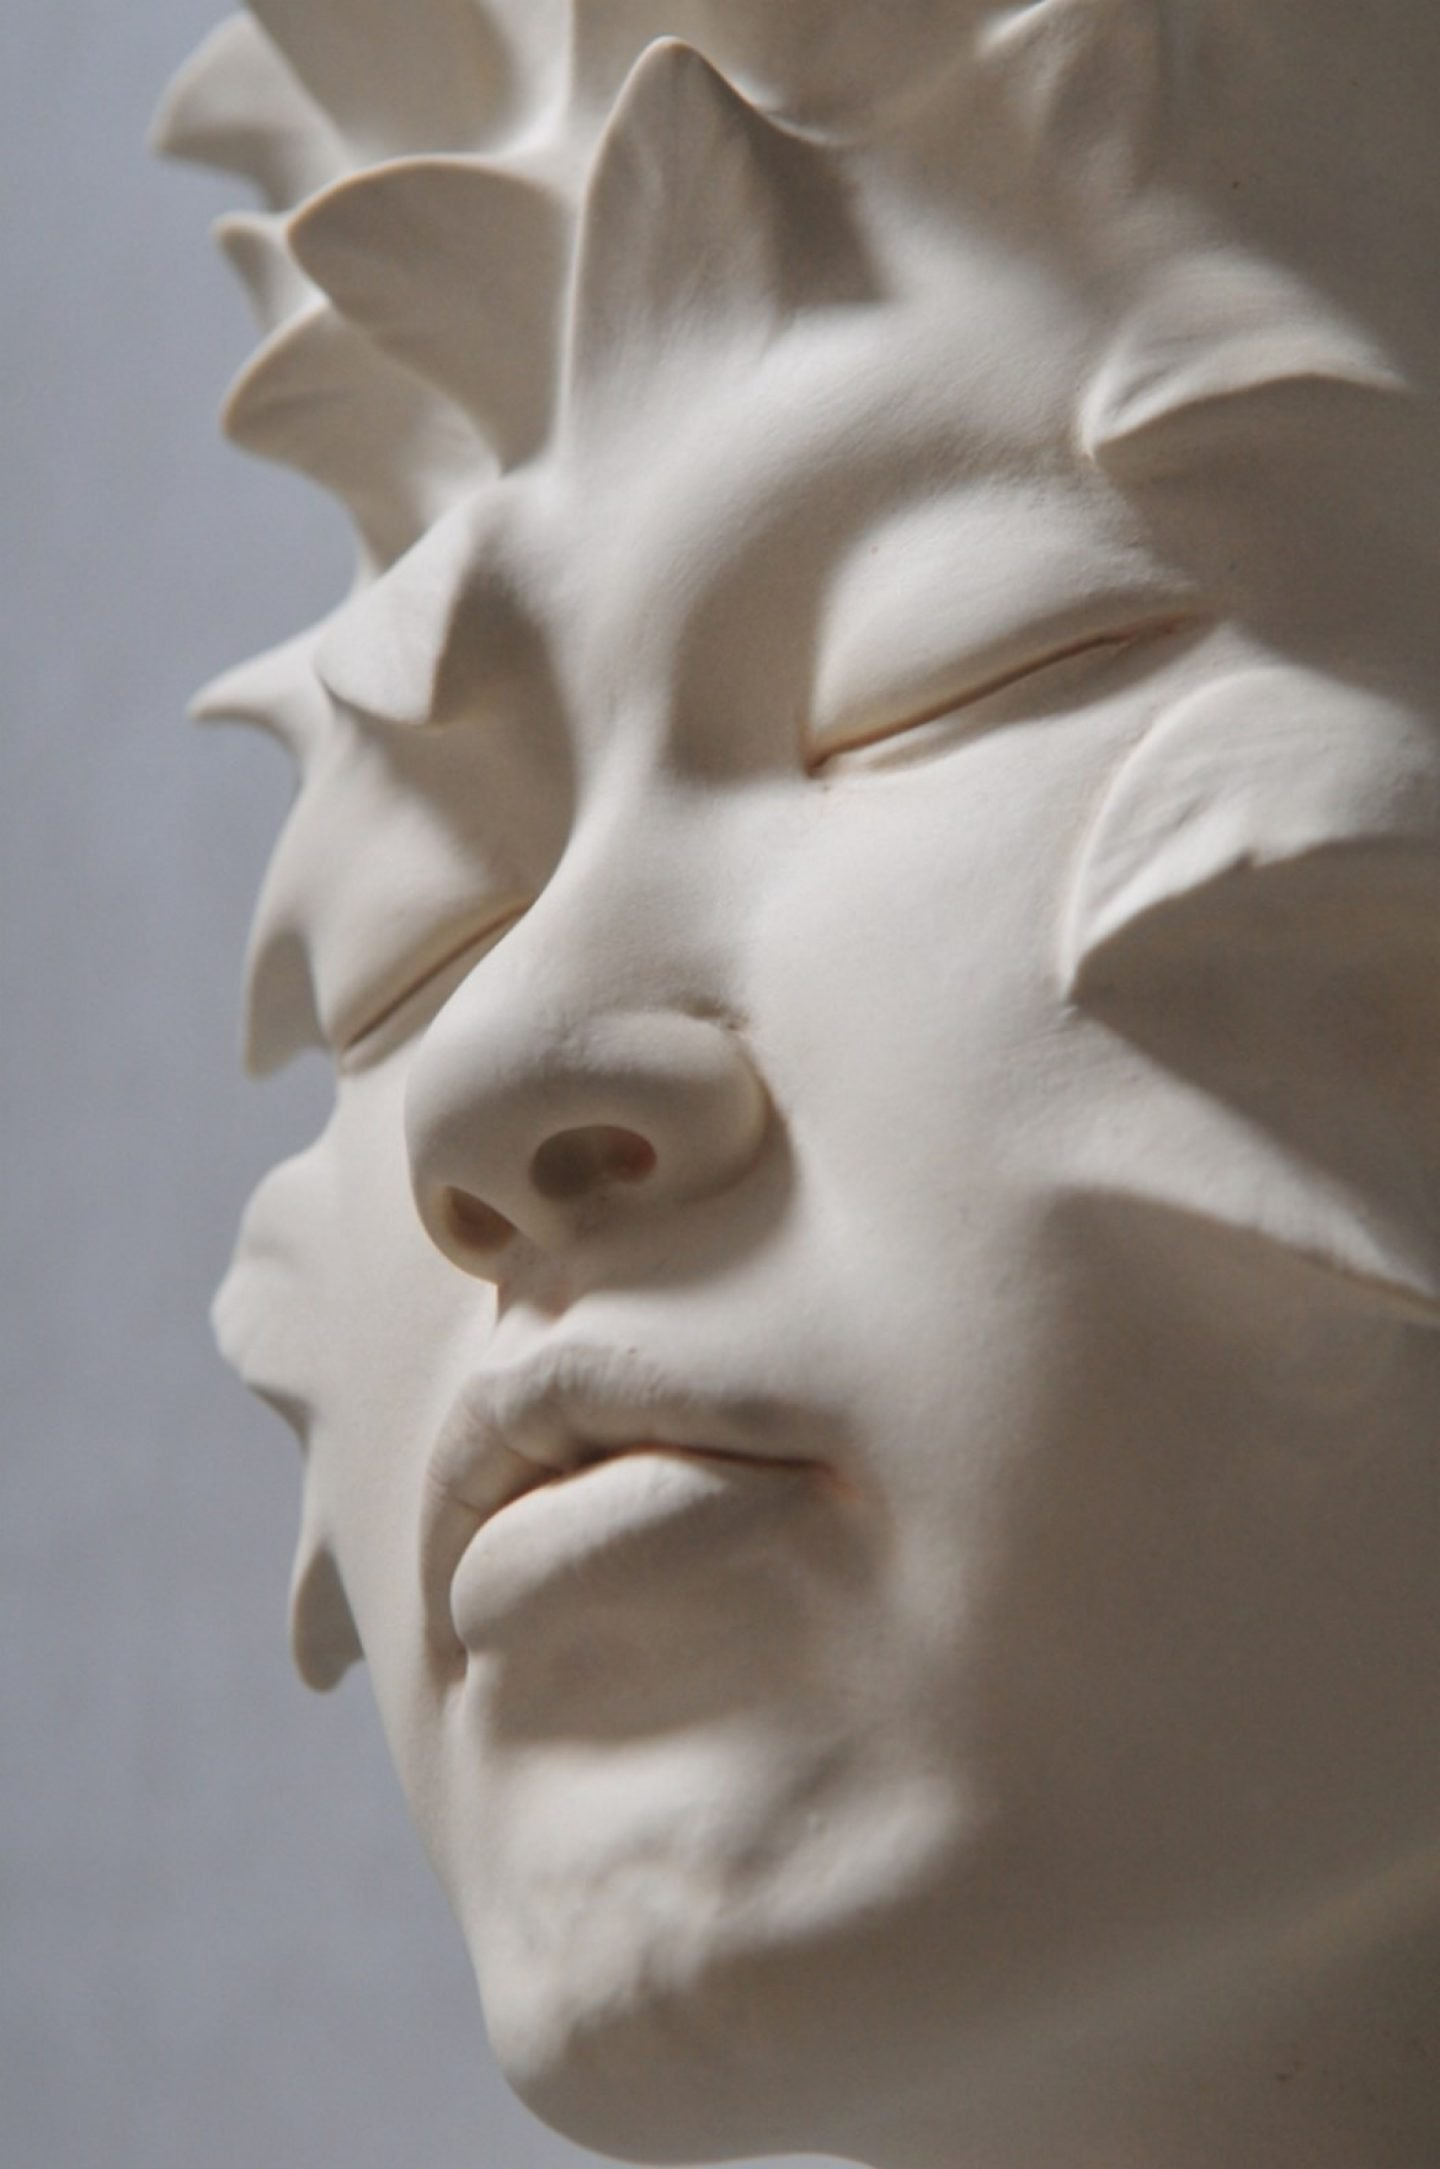 Johnson_Tsang_Art (3)